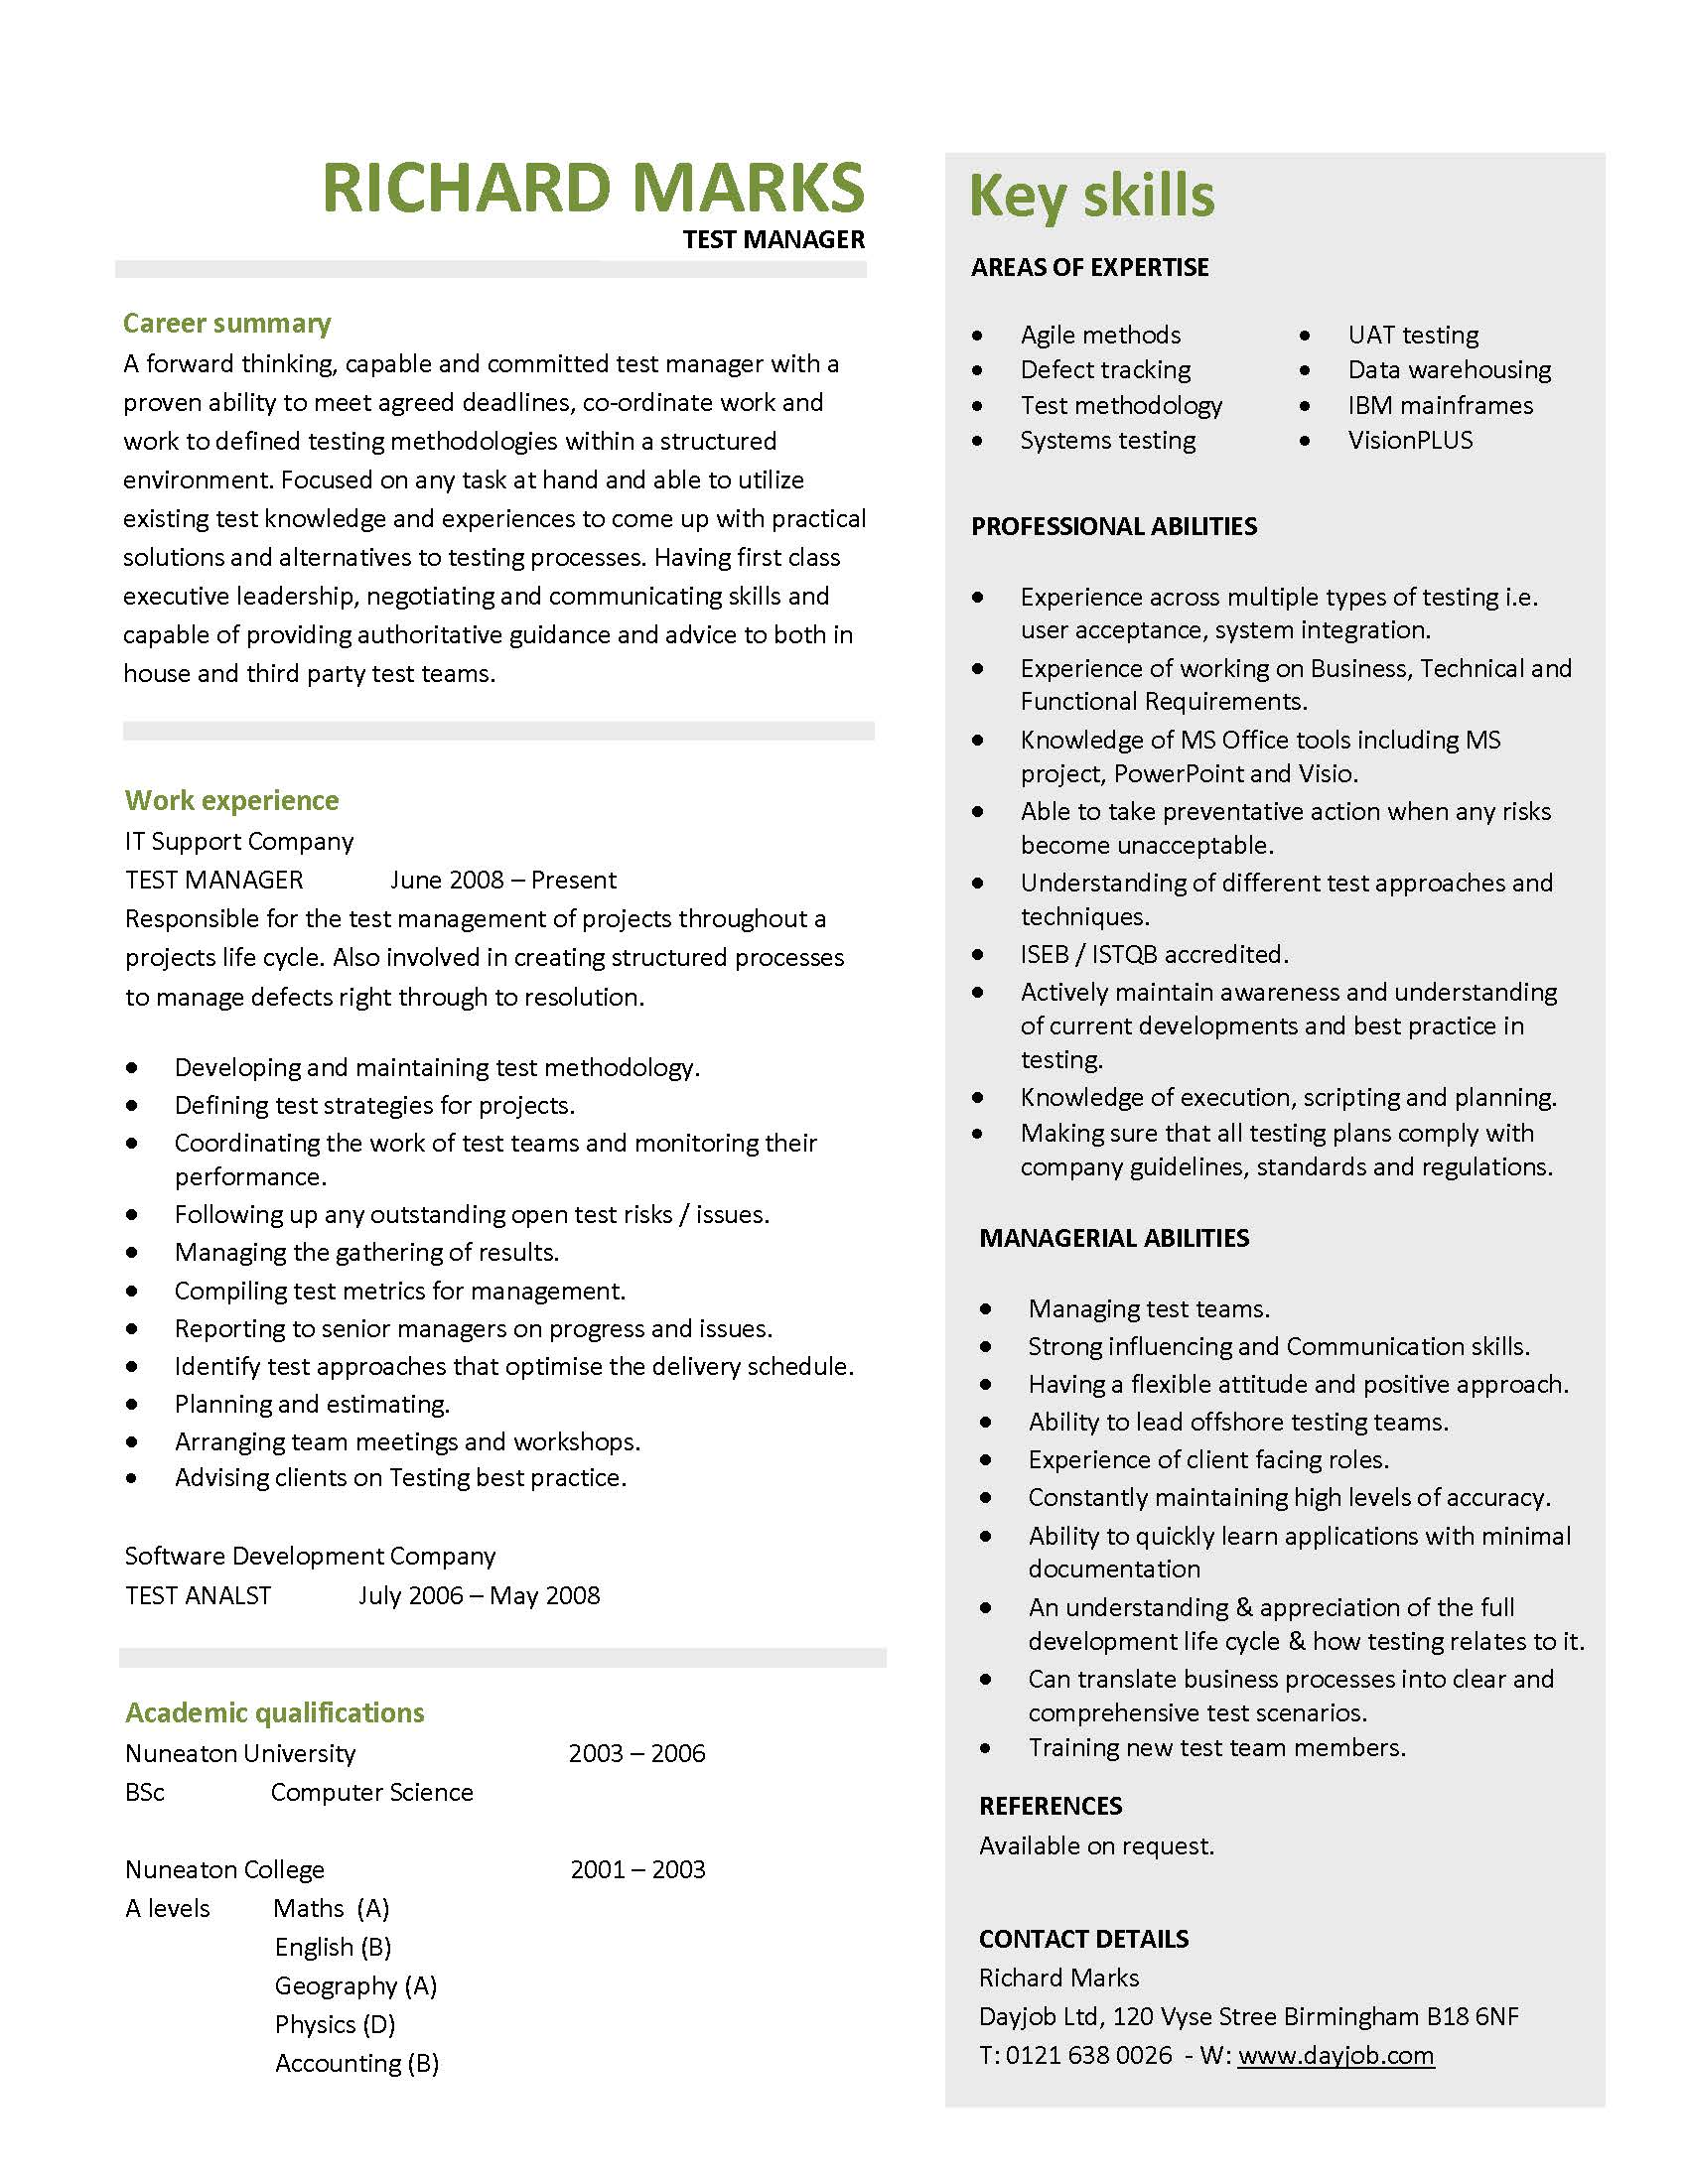 sample cv 2 year experience cover letter and resume samples sample cv 2 year experience unemployed sample cv template and guide stefanbarretto92 stefan barretto page 16